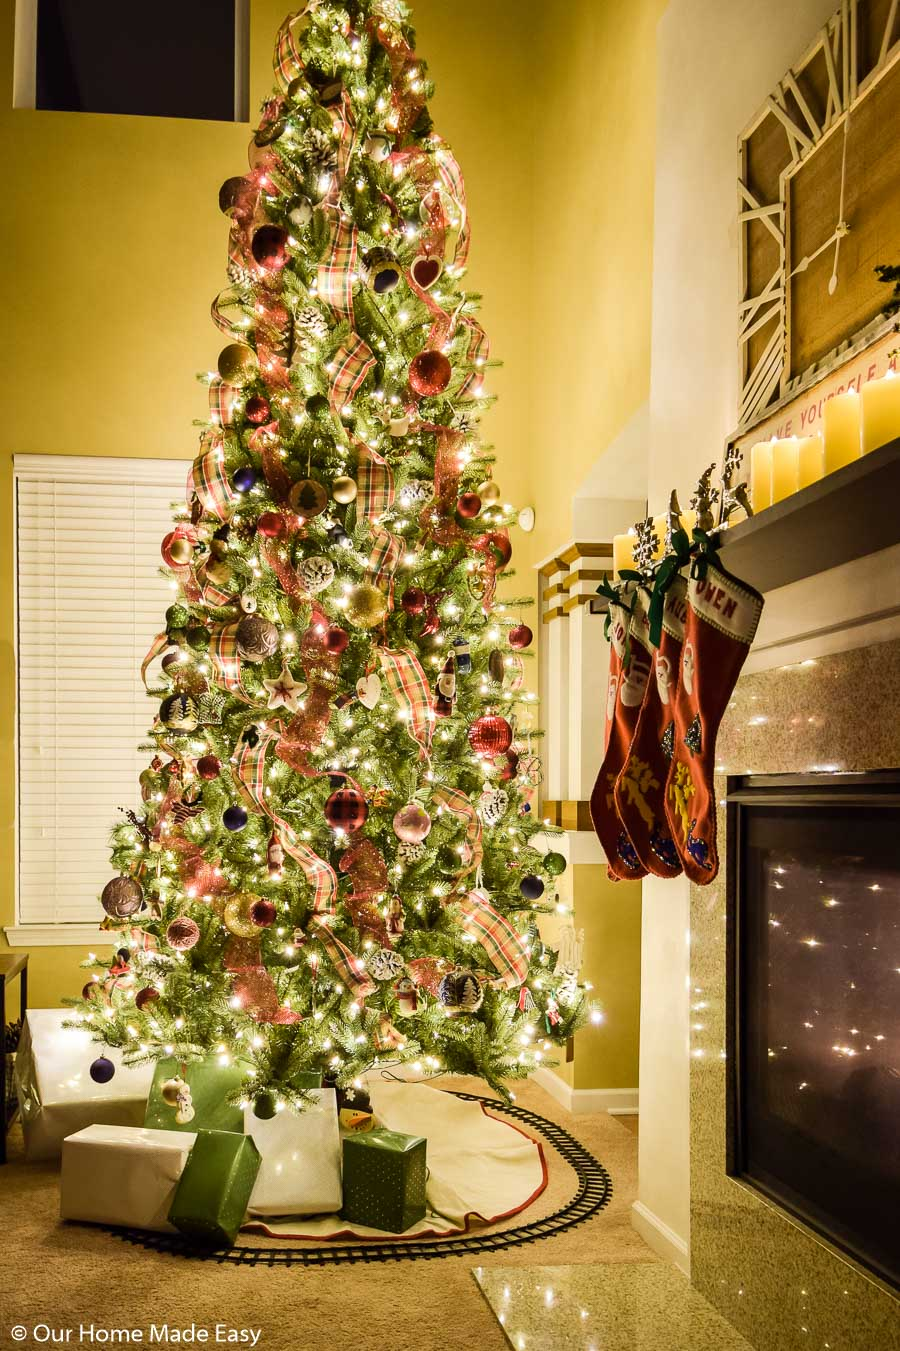 This bright Christmas tree lights up the living room in our home